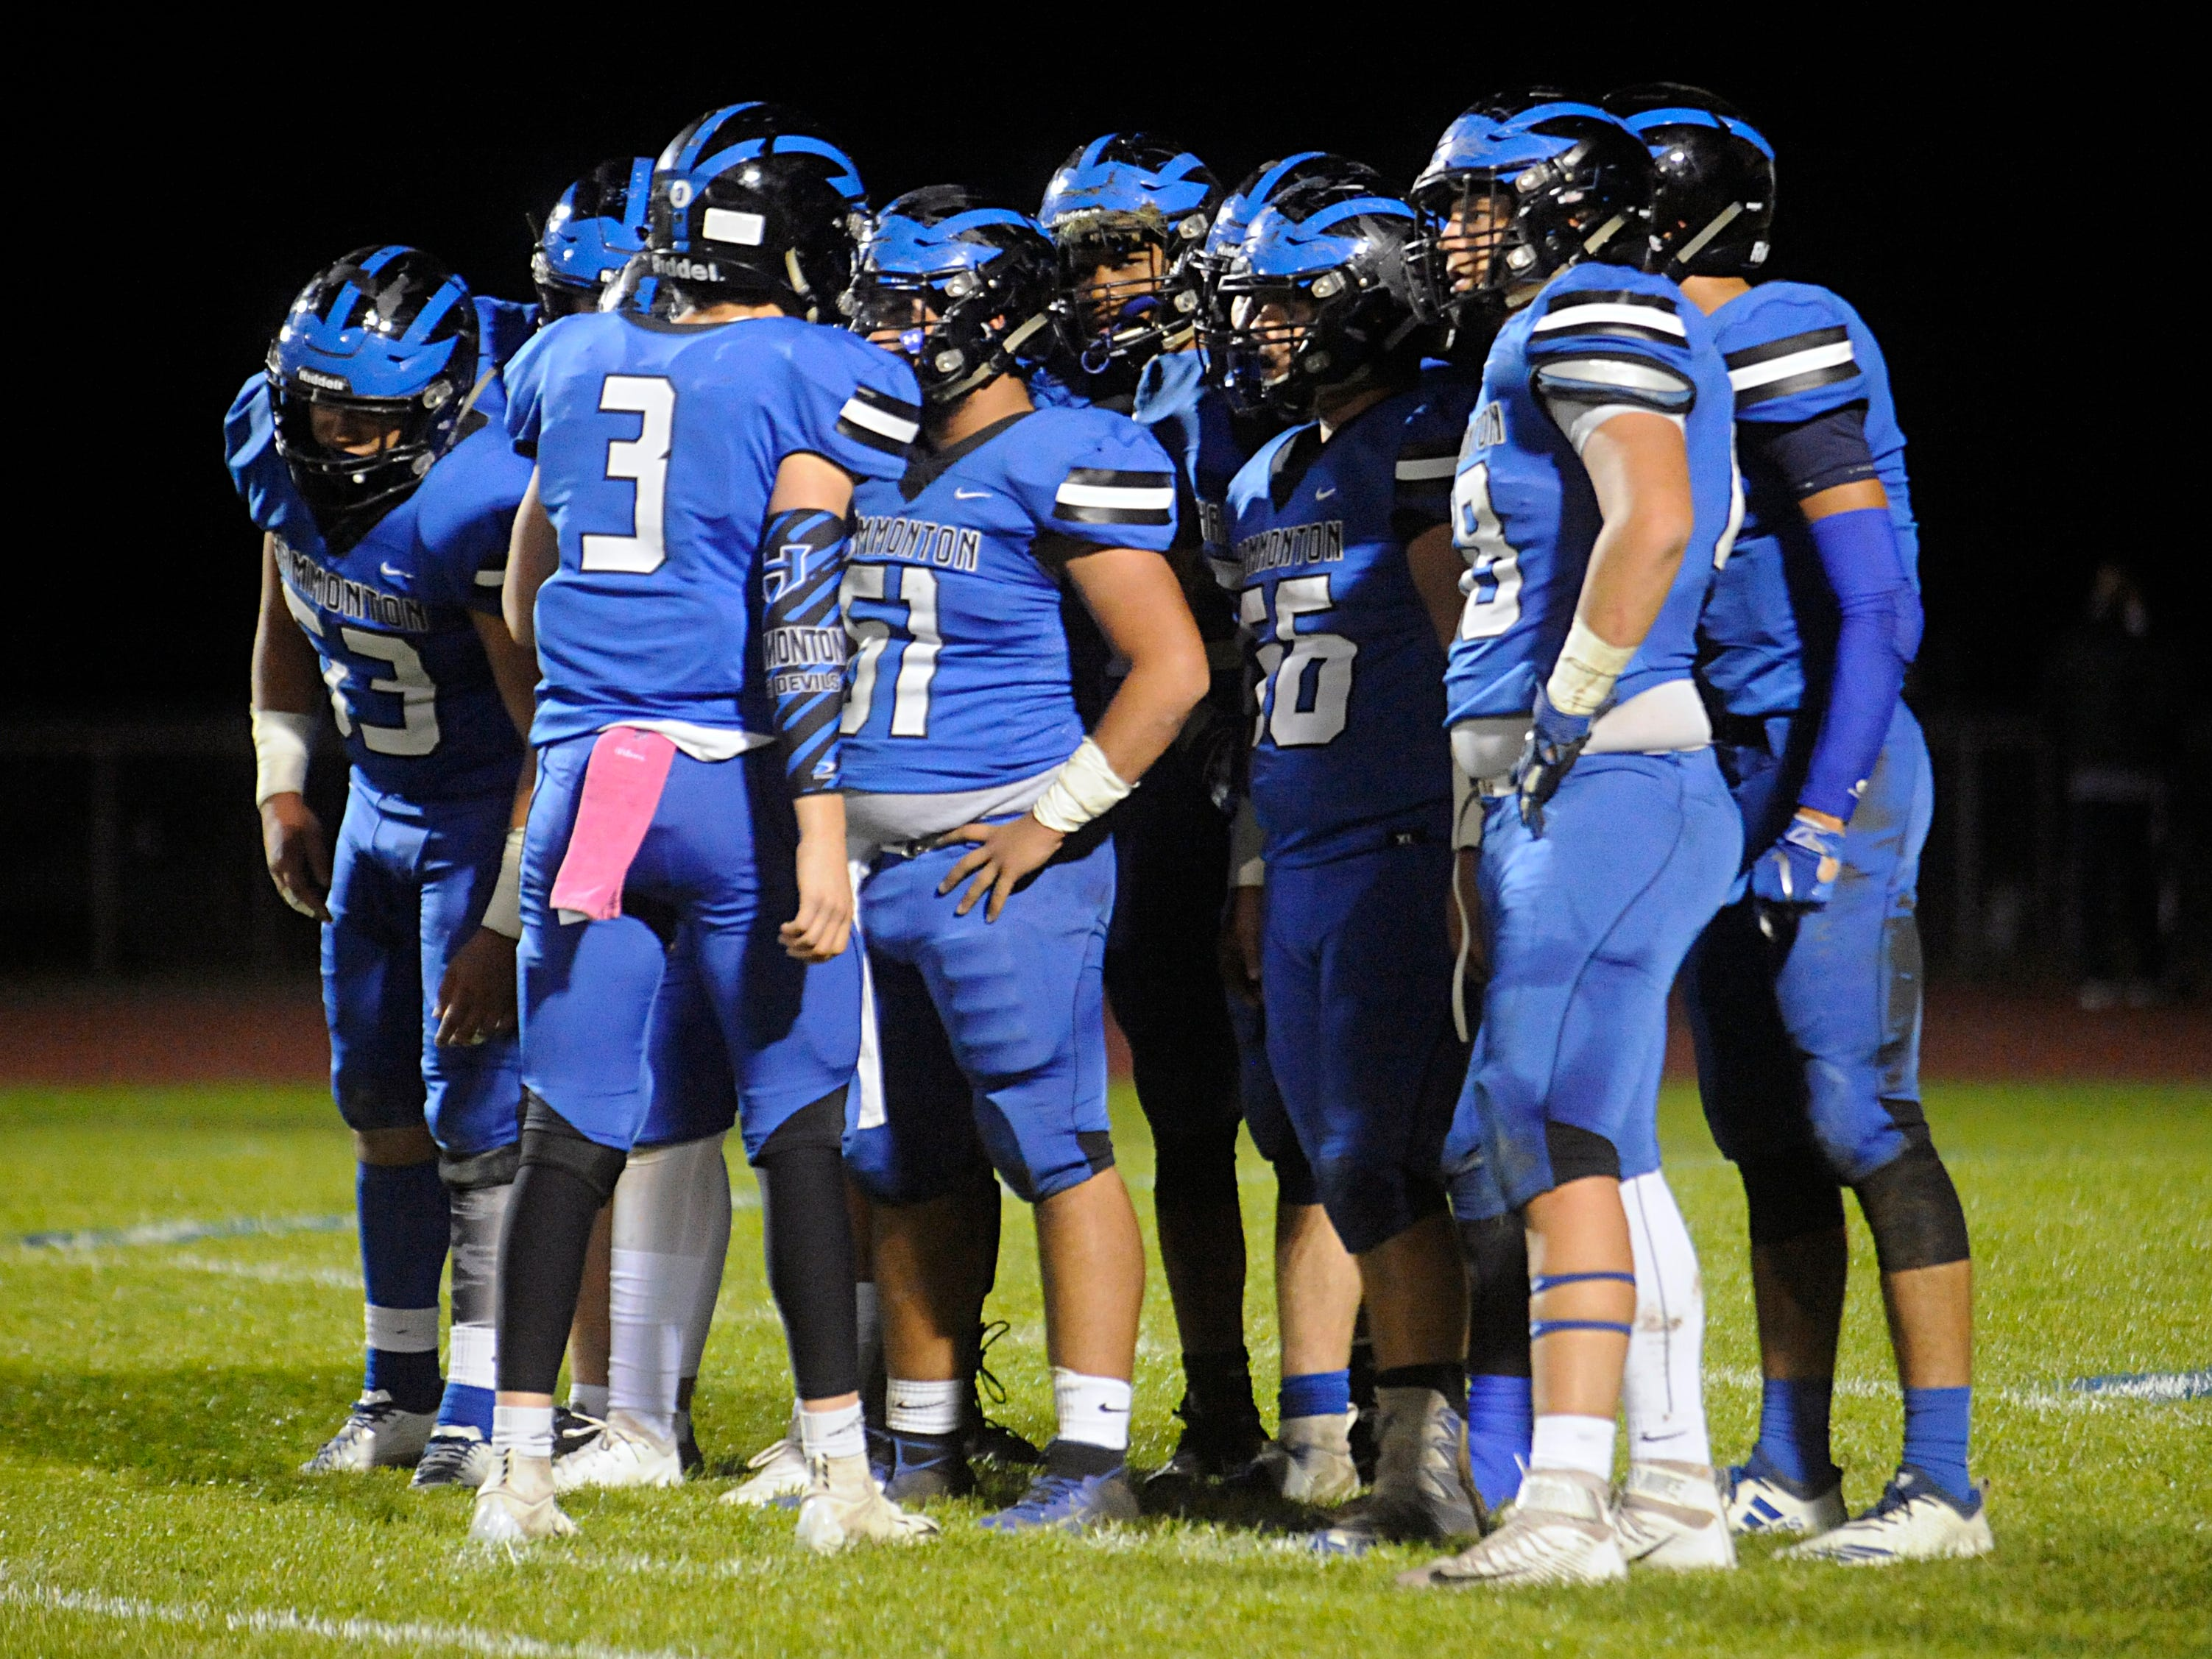 The Eastern High School football team defeated Hammonton on the road, 13-12, on Friday, October 19, 2018.